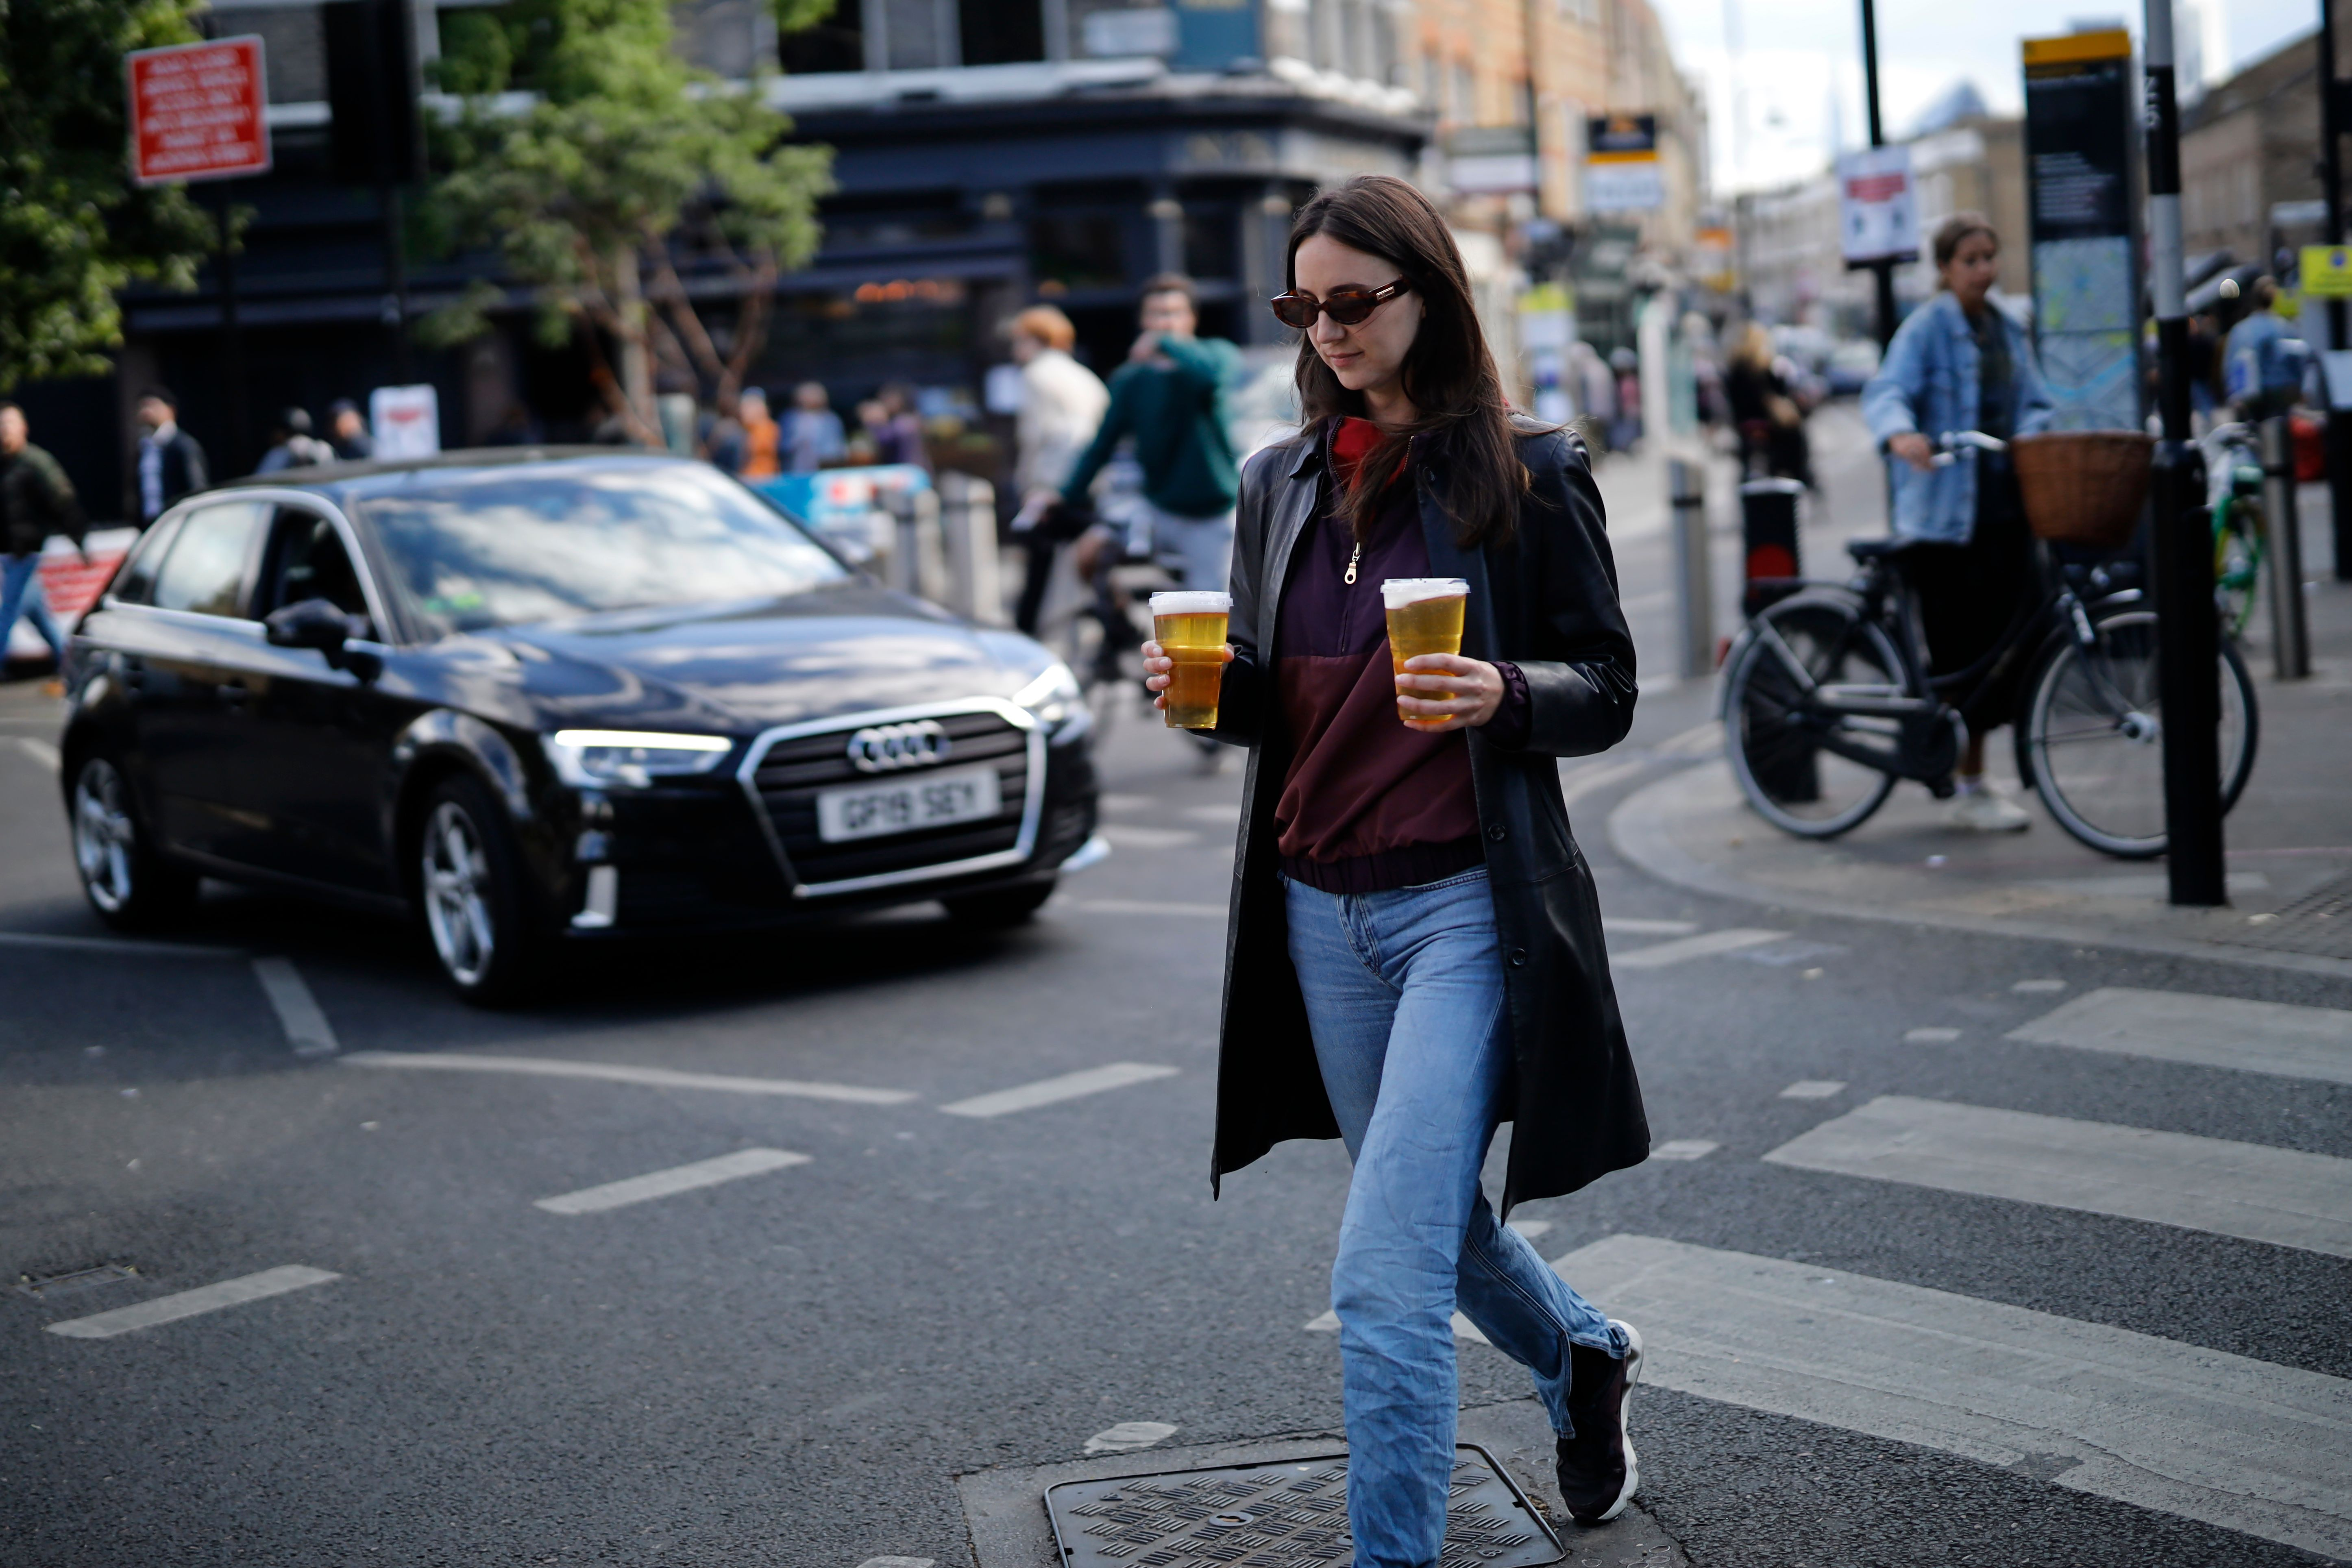 A woman carries takeaway draught beer in plastic cups from a pub in Broadway Market, London on June  5, 2020, as lockdown measures are eased during the novel coronavirus COVID-19 pandemic. (Photo by Tolga Akmen / AFP) (Photo by TOLGA AKMEN/AFP via Getty Images)